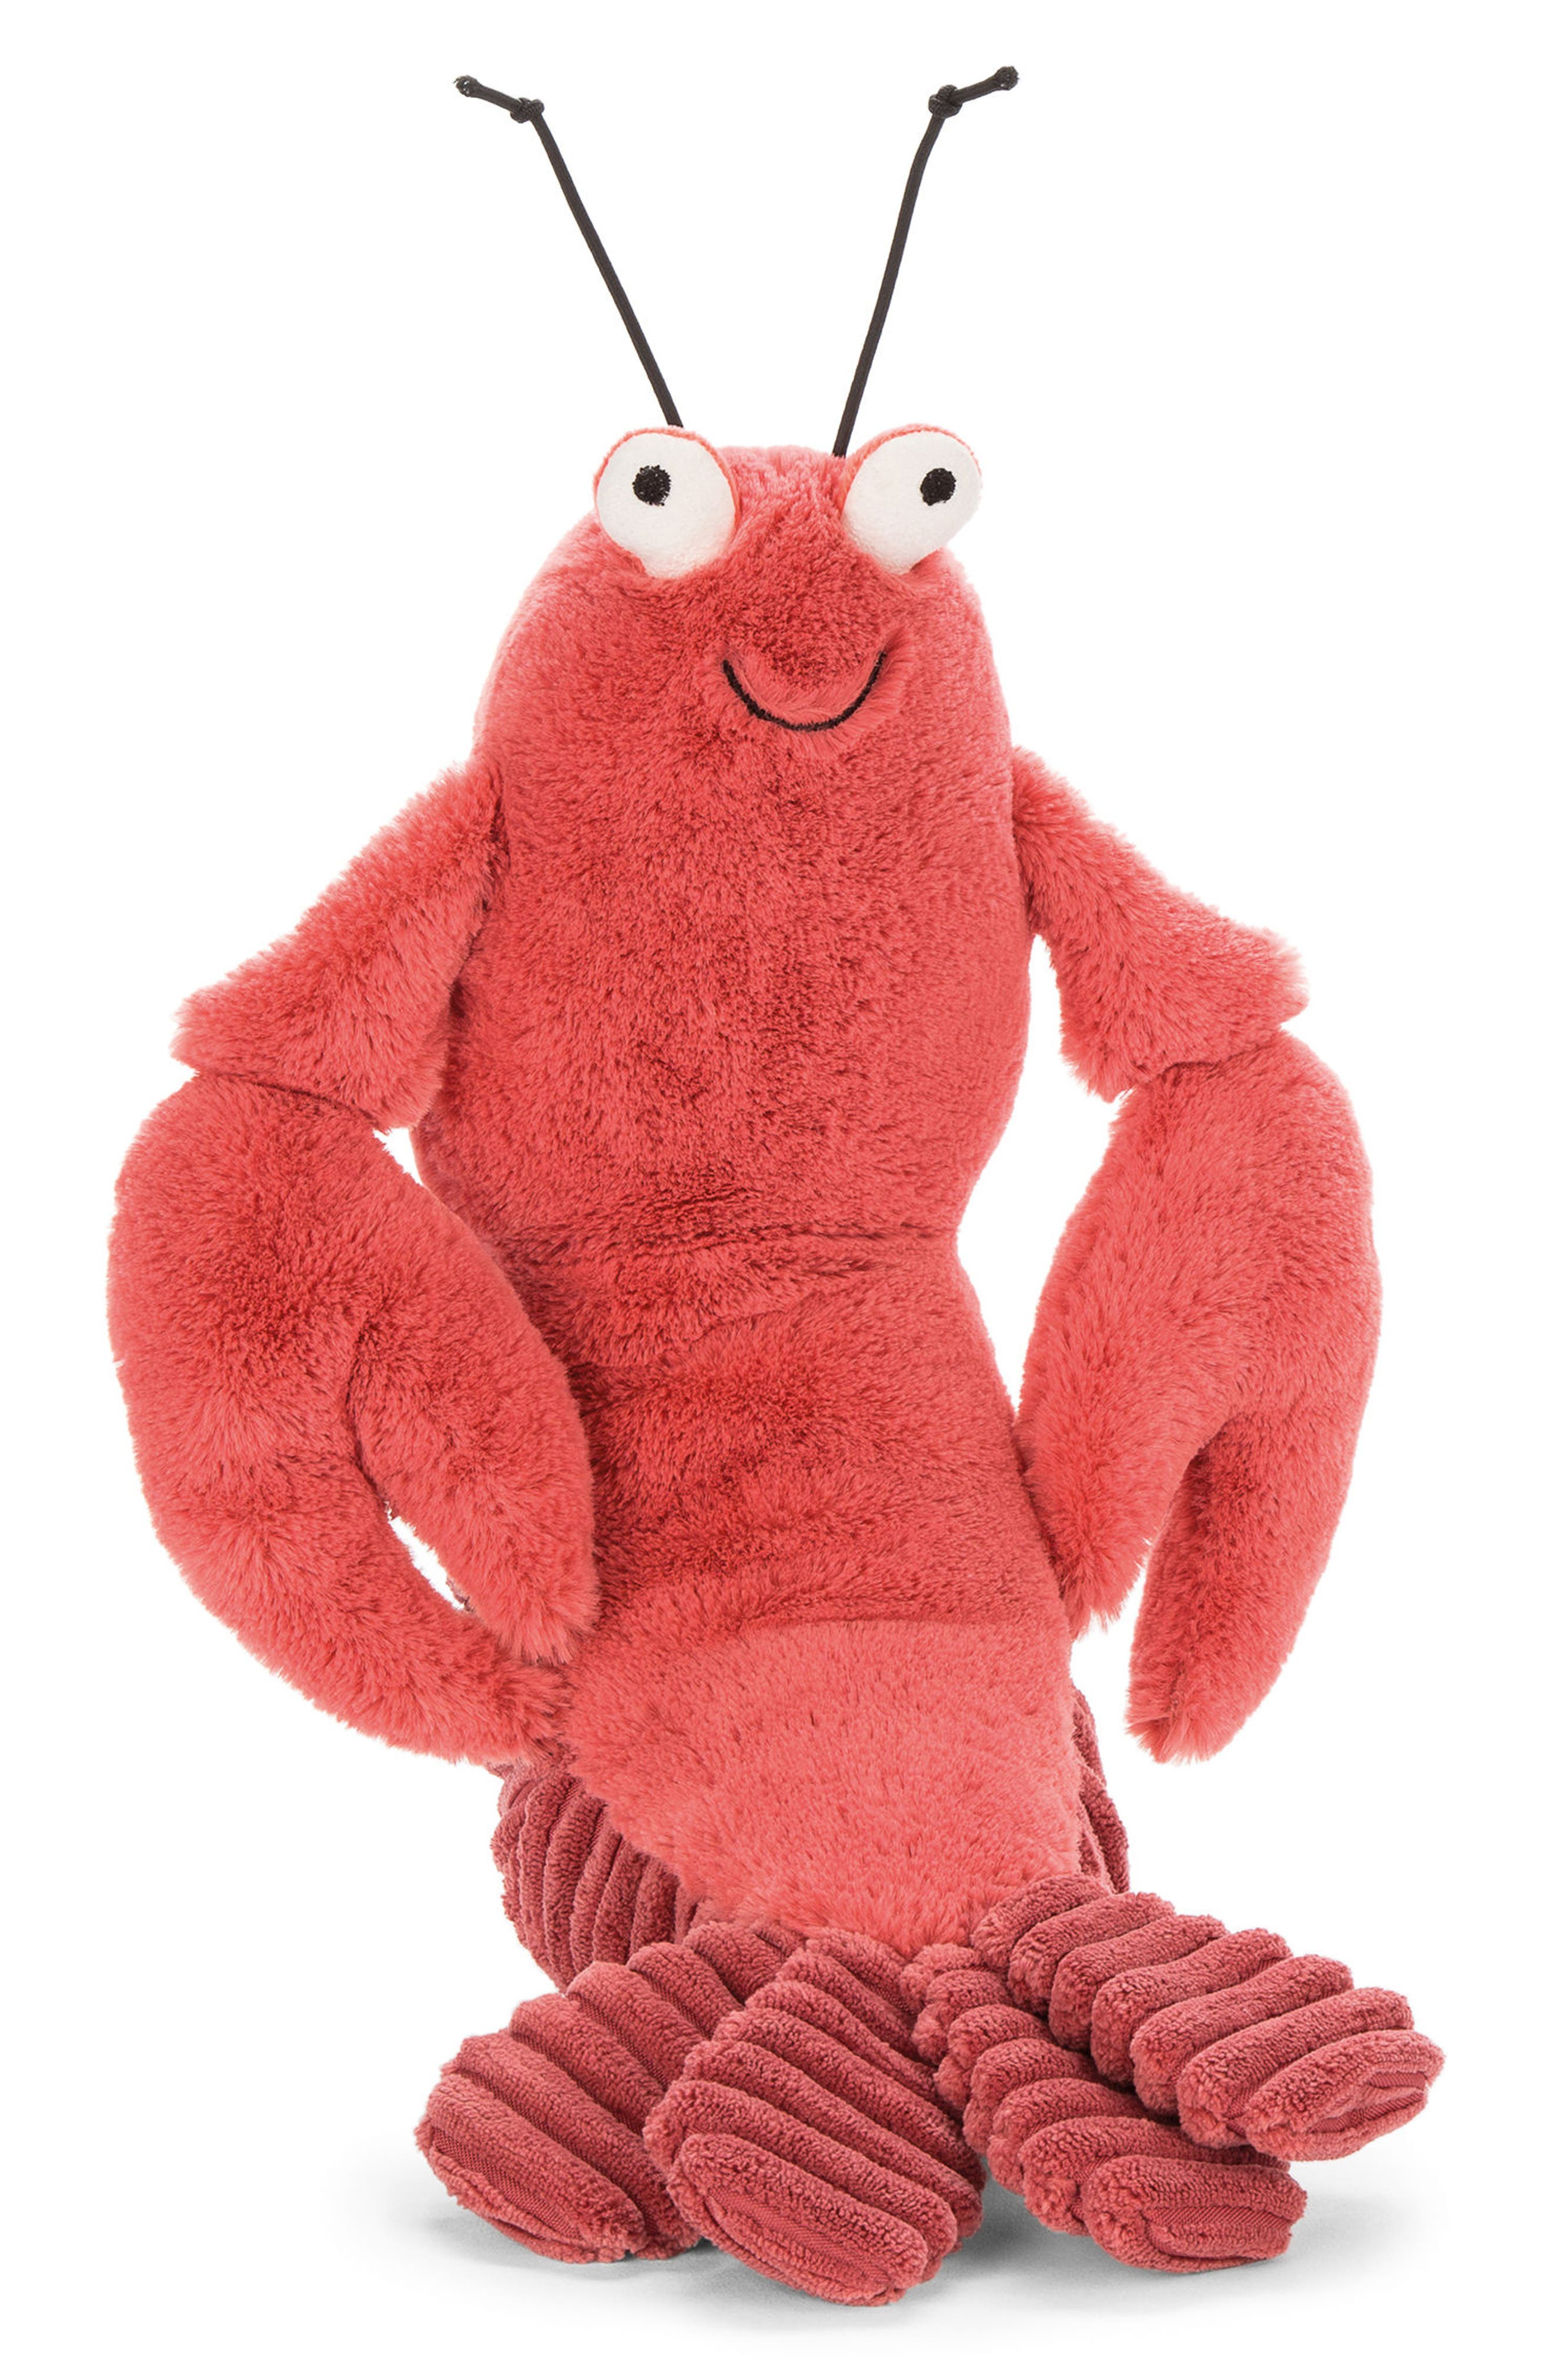 Larry Lobster Stuffed Animal,                             Main thumbnail 1, color,                             Red